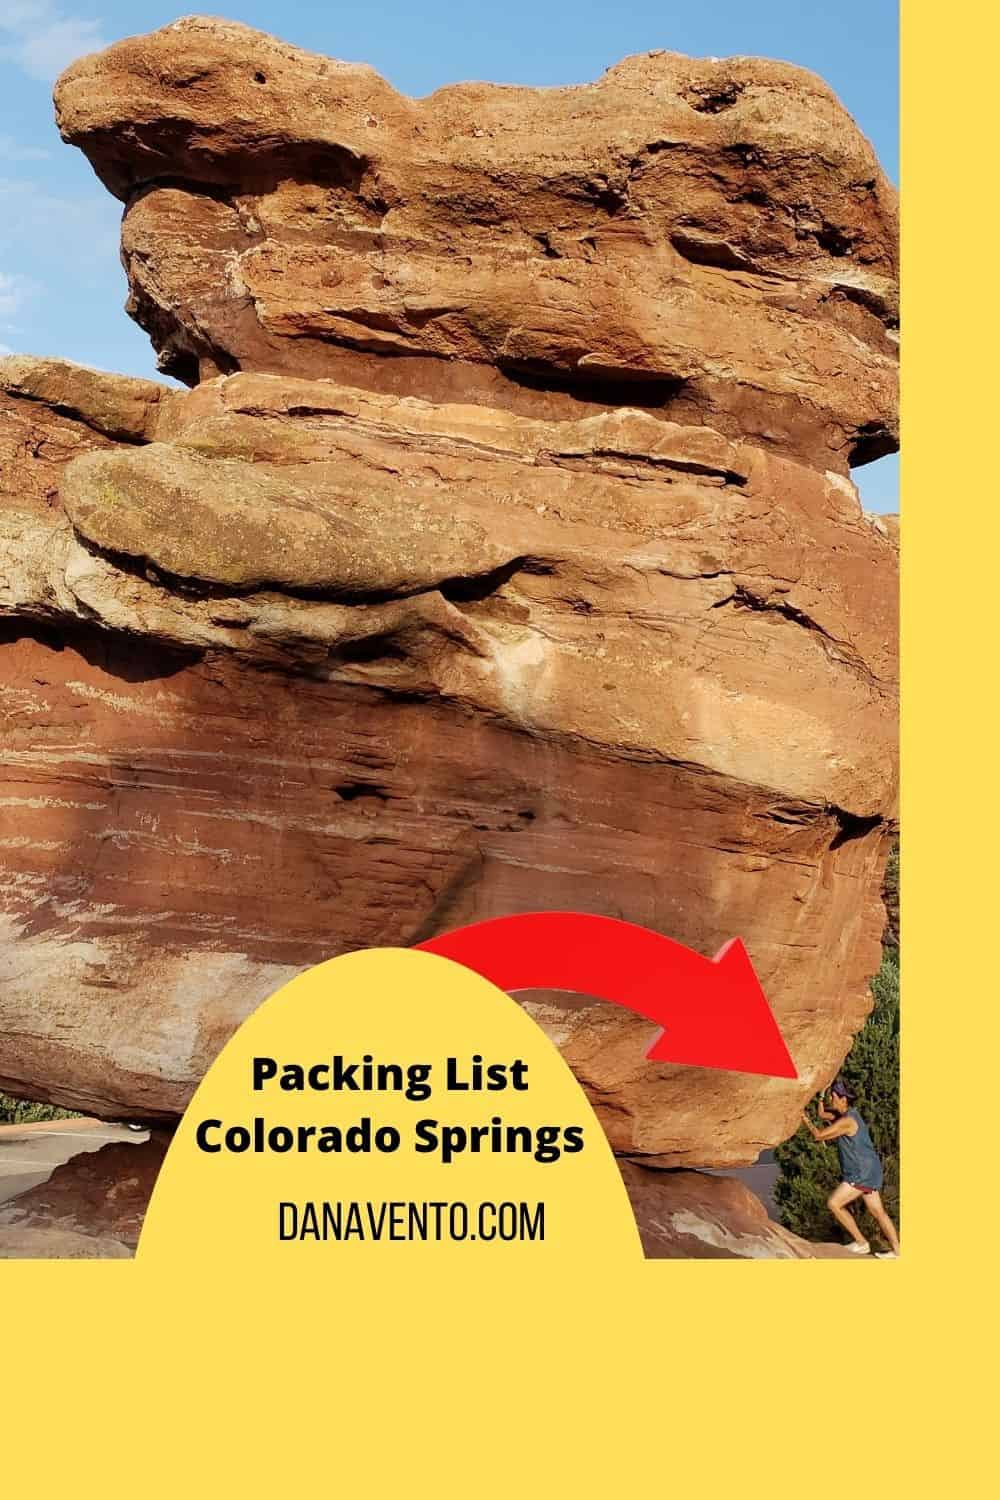 Colorado Springs Adaptable Summer Packing List garden of gods lady pushing rock